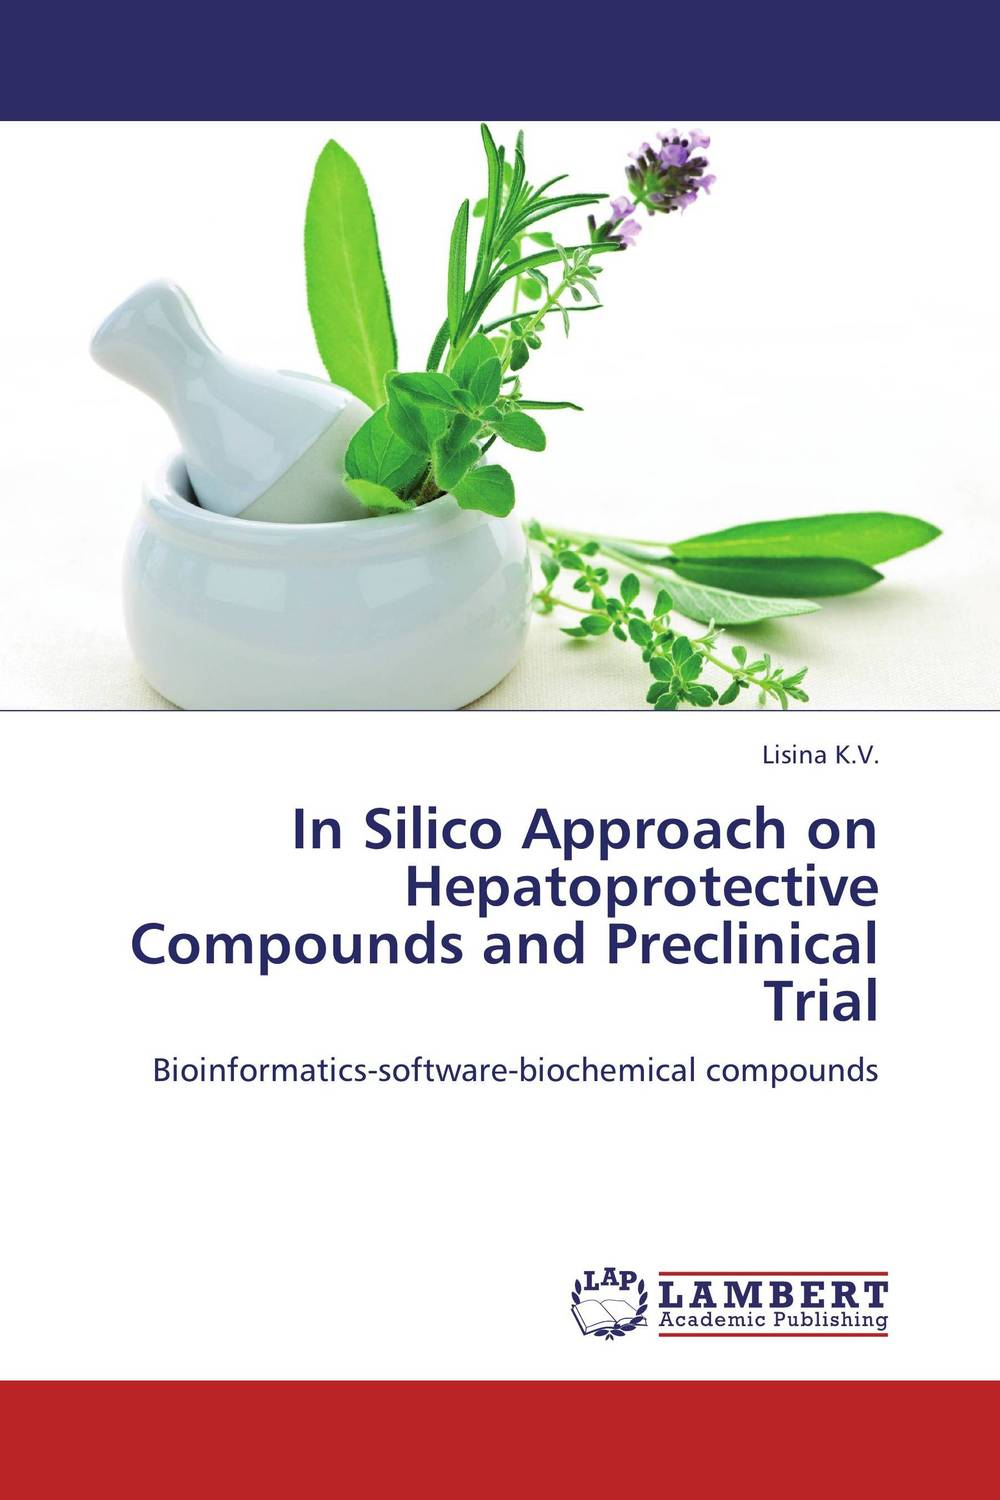 In Silico Approach on Hepatoprotective Compounds and Preclinical Trial stem bromelain in silico analysis for stability and modification